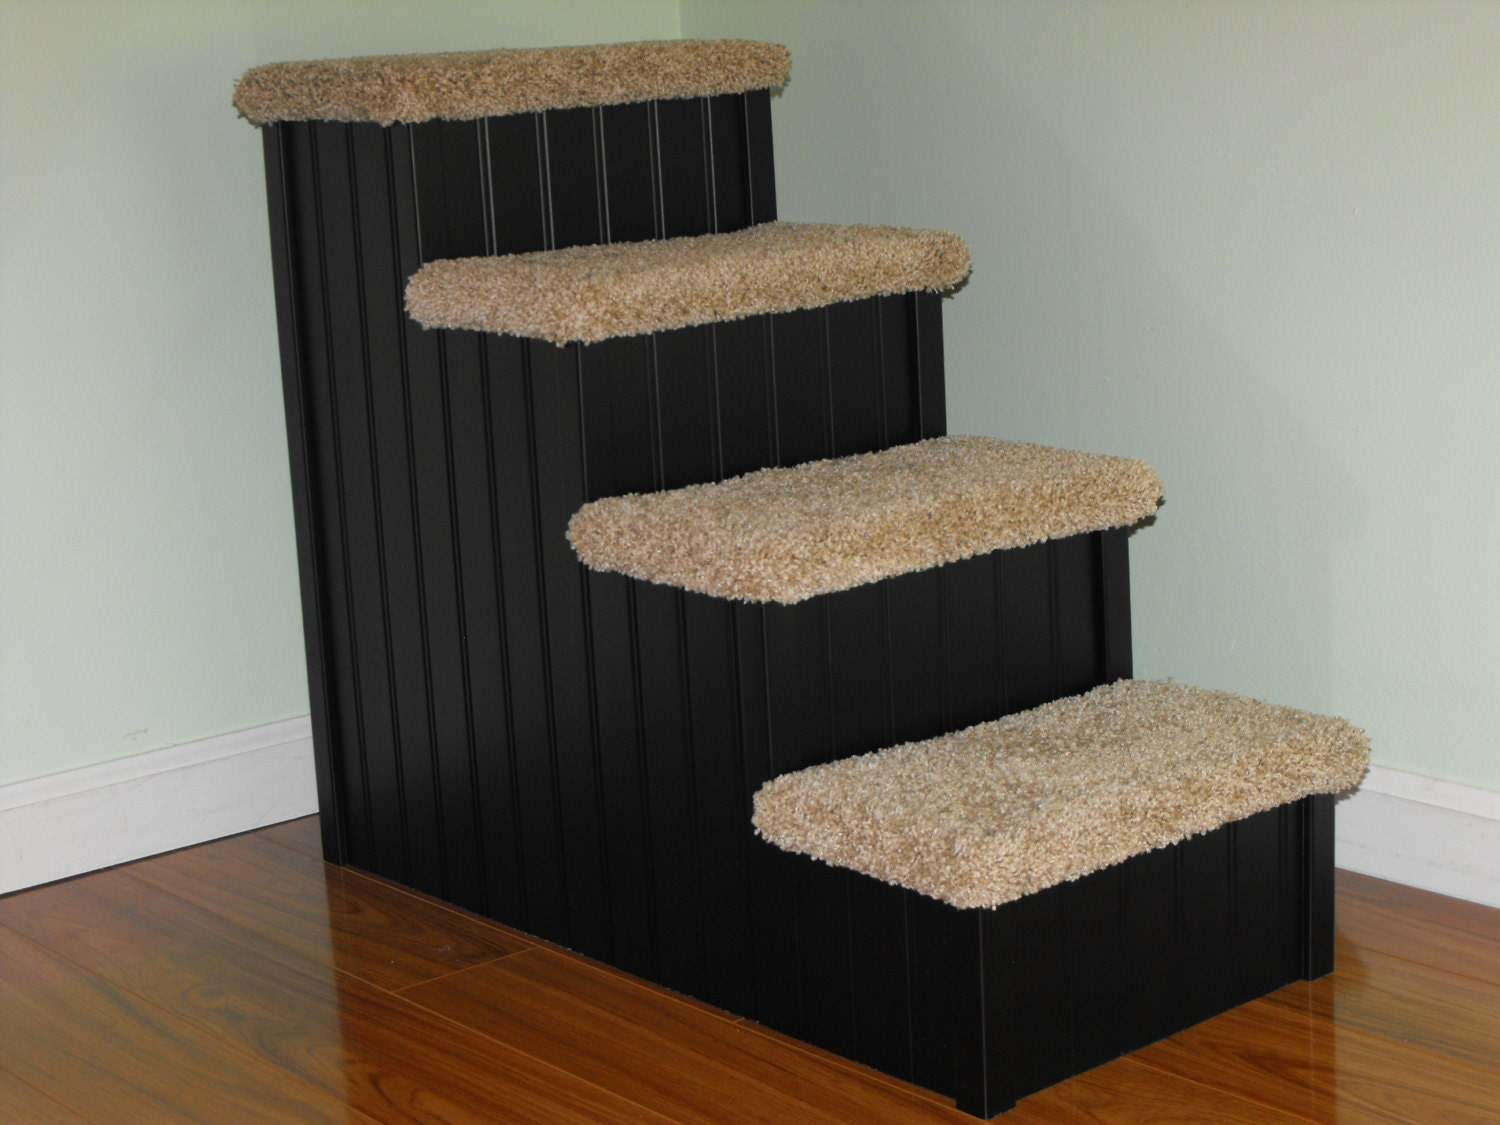 Superior Pet Stairs, 24 High Dog Steps For Pets 5 30 Lbs, Dog Stairs, Pet Steps,  Doggie Stairs For Small Dogs, Best Stairs For Dogs To Get On Bed